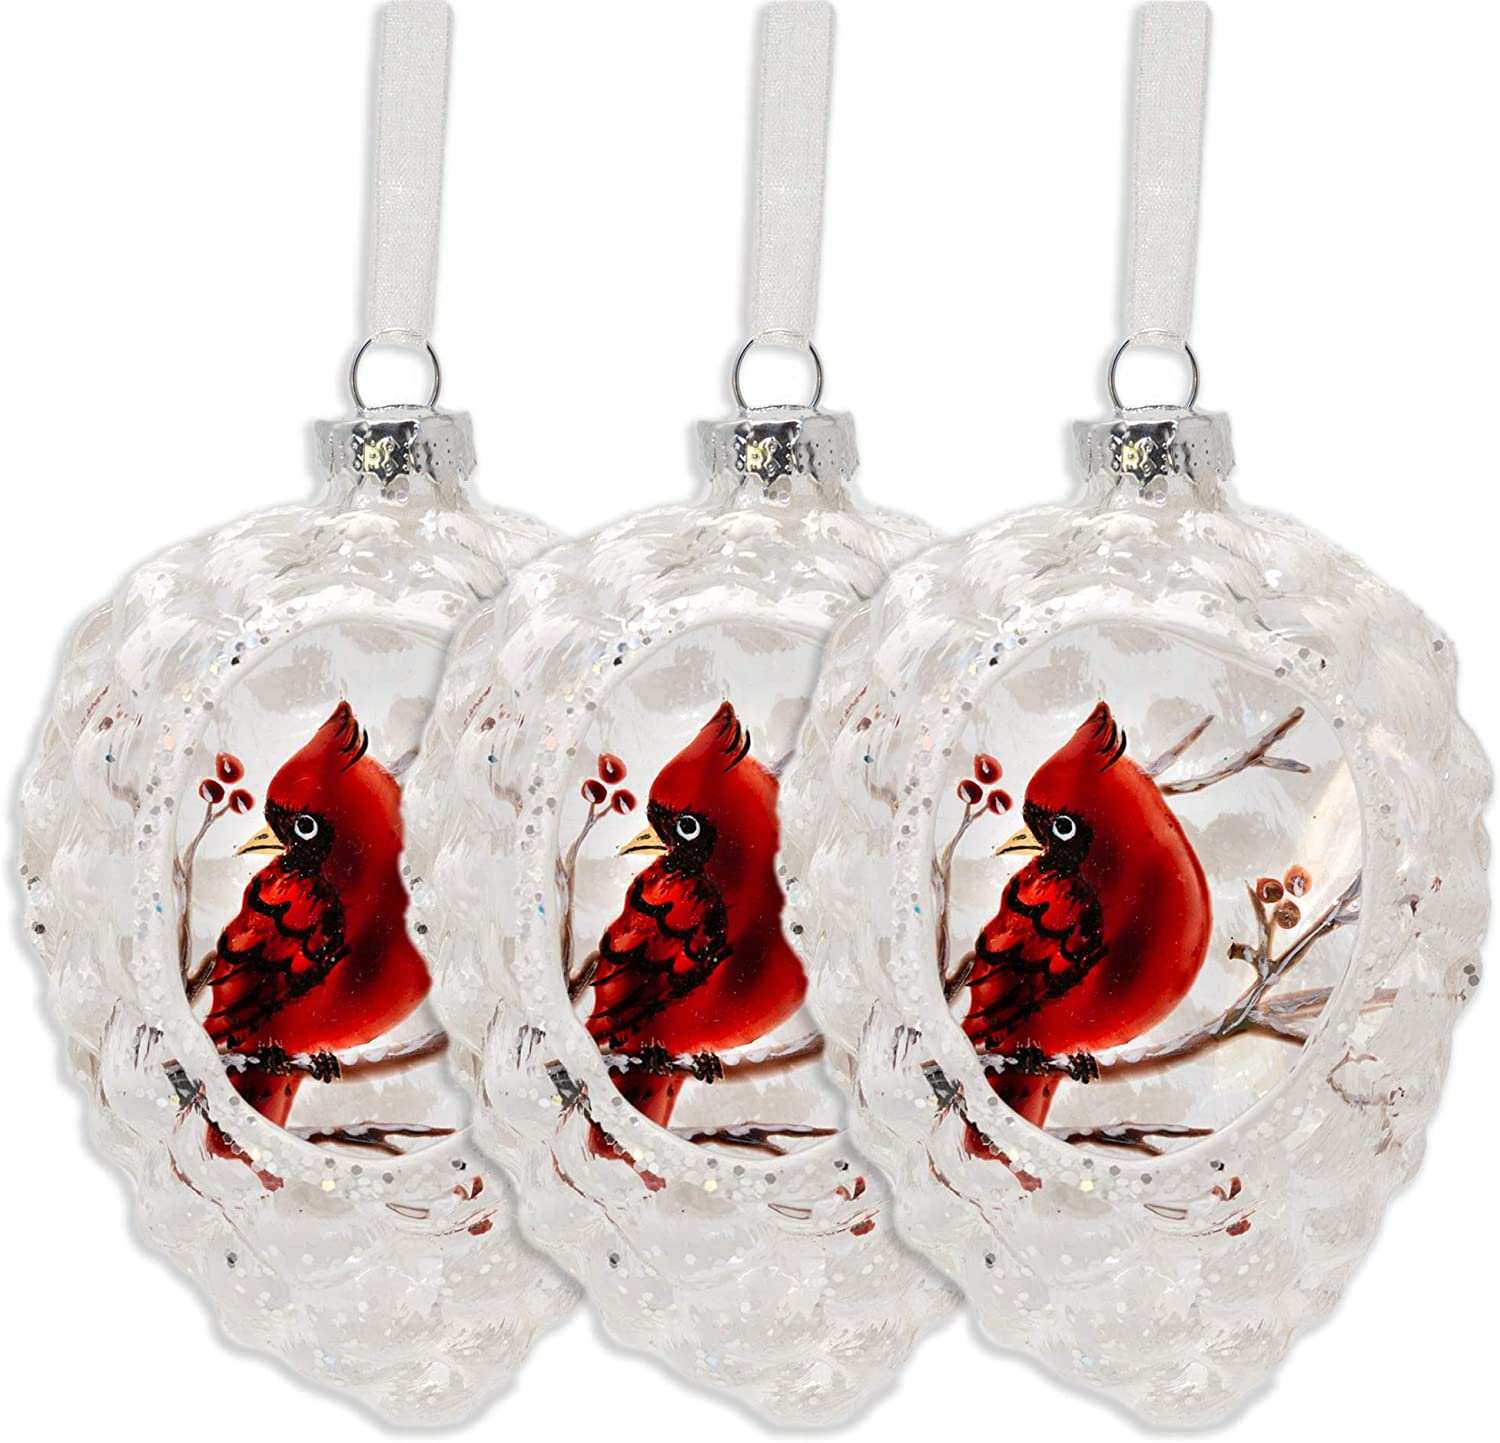 BANBERRY DESIGNS Cardinal Christmas Ornaments - Set of 3 Glass Ornament Set Pinecone Shape - Hand Painted Red Winter Cardinals on a Branch Design with Berries - Holiday Ornament Sets Boxed - 4 Inches